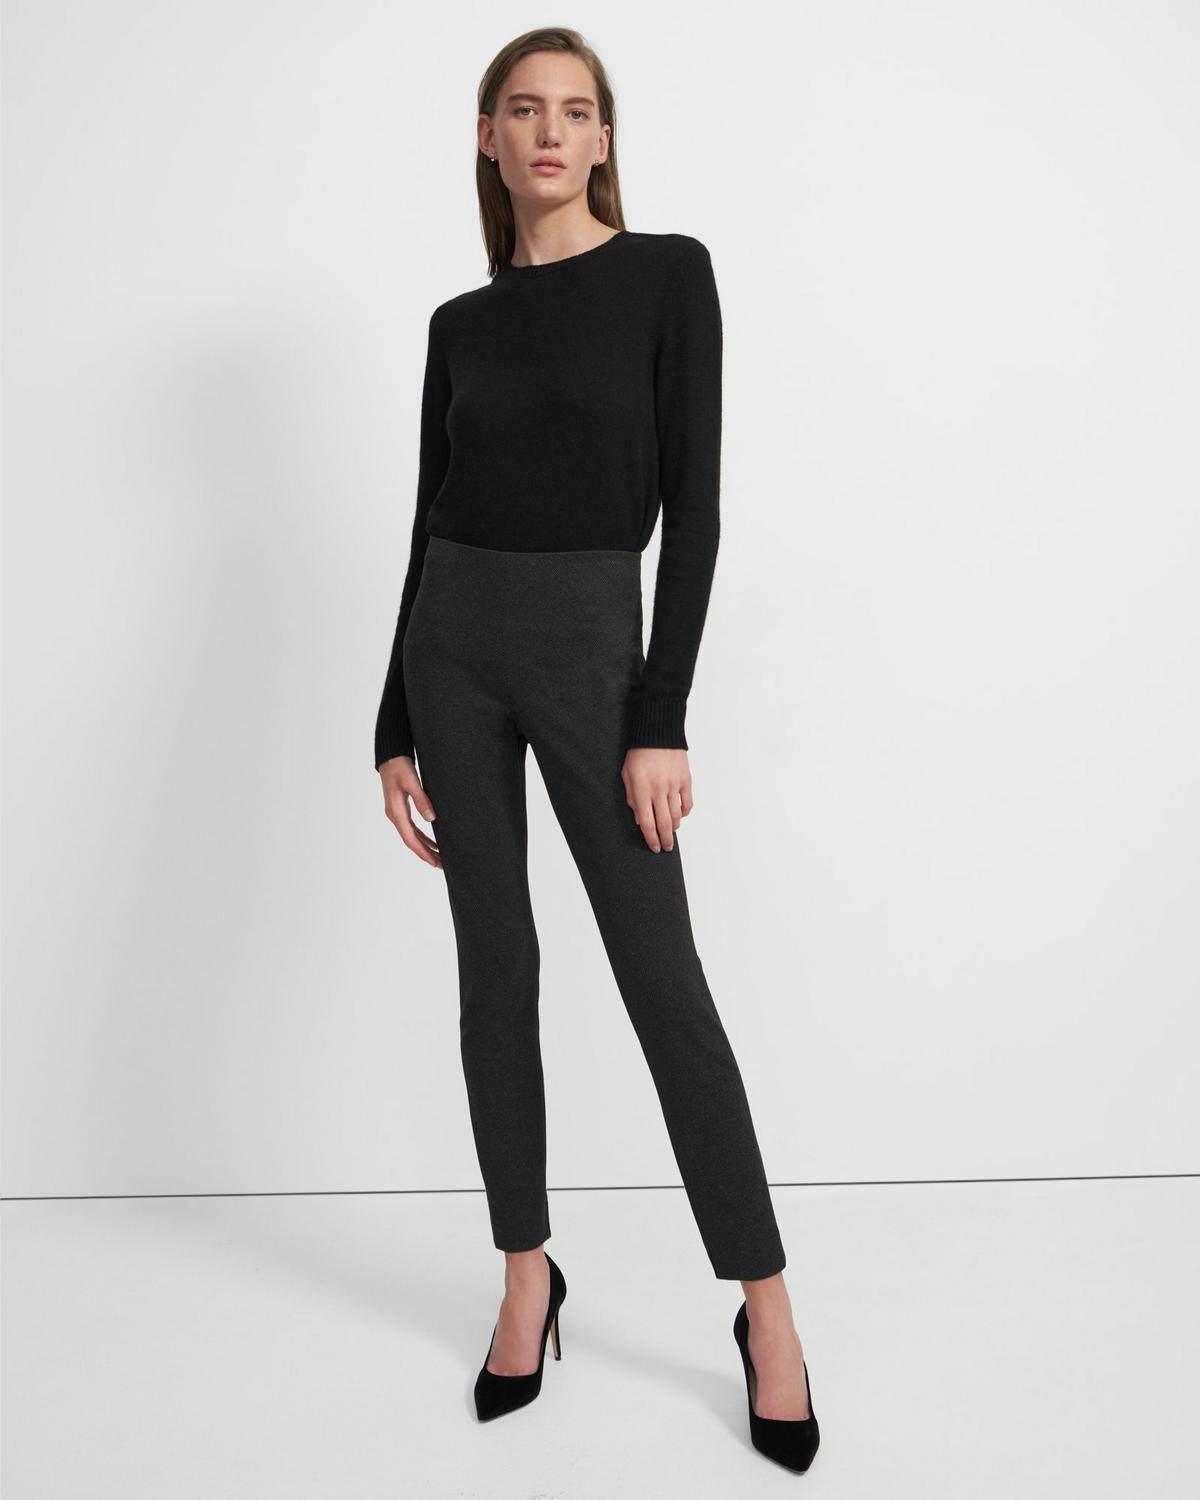 Skinny Legging in Viscose Knit